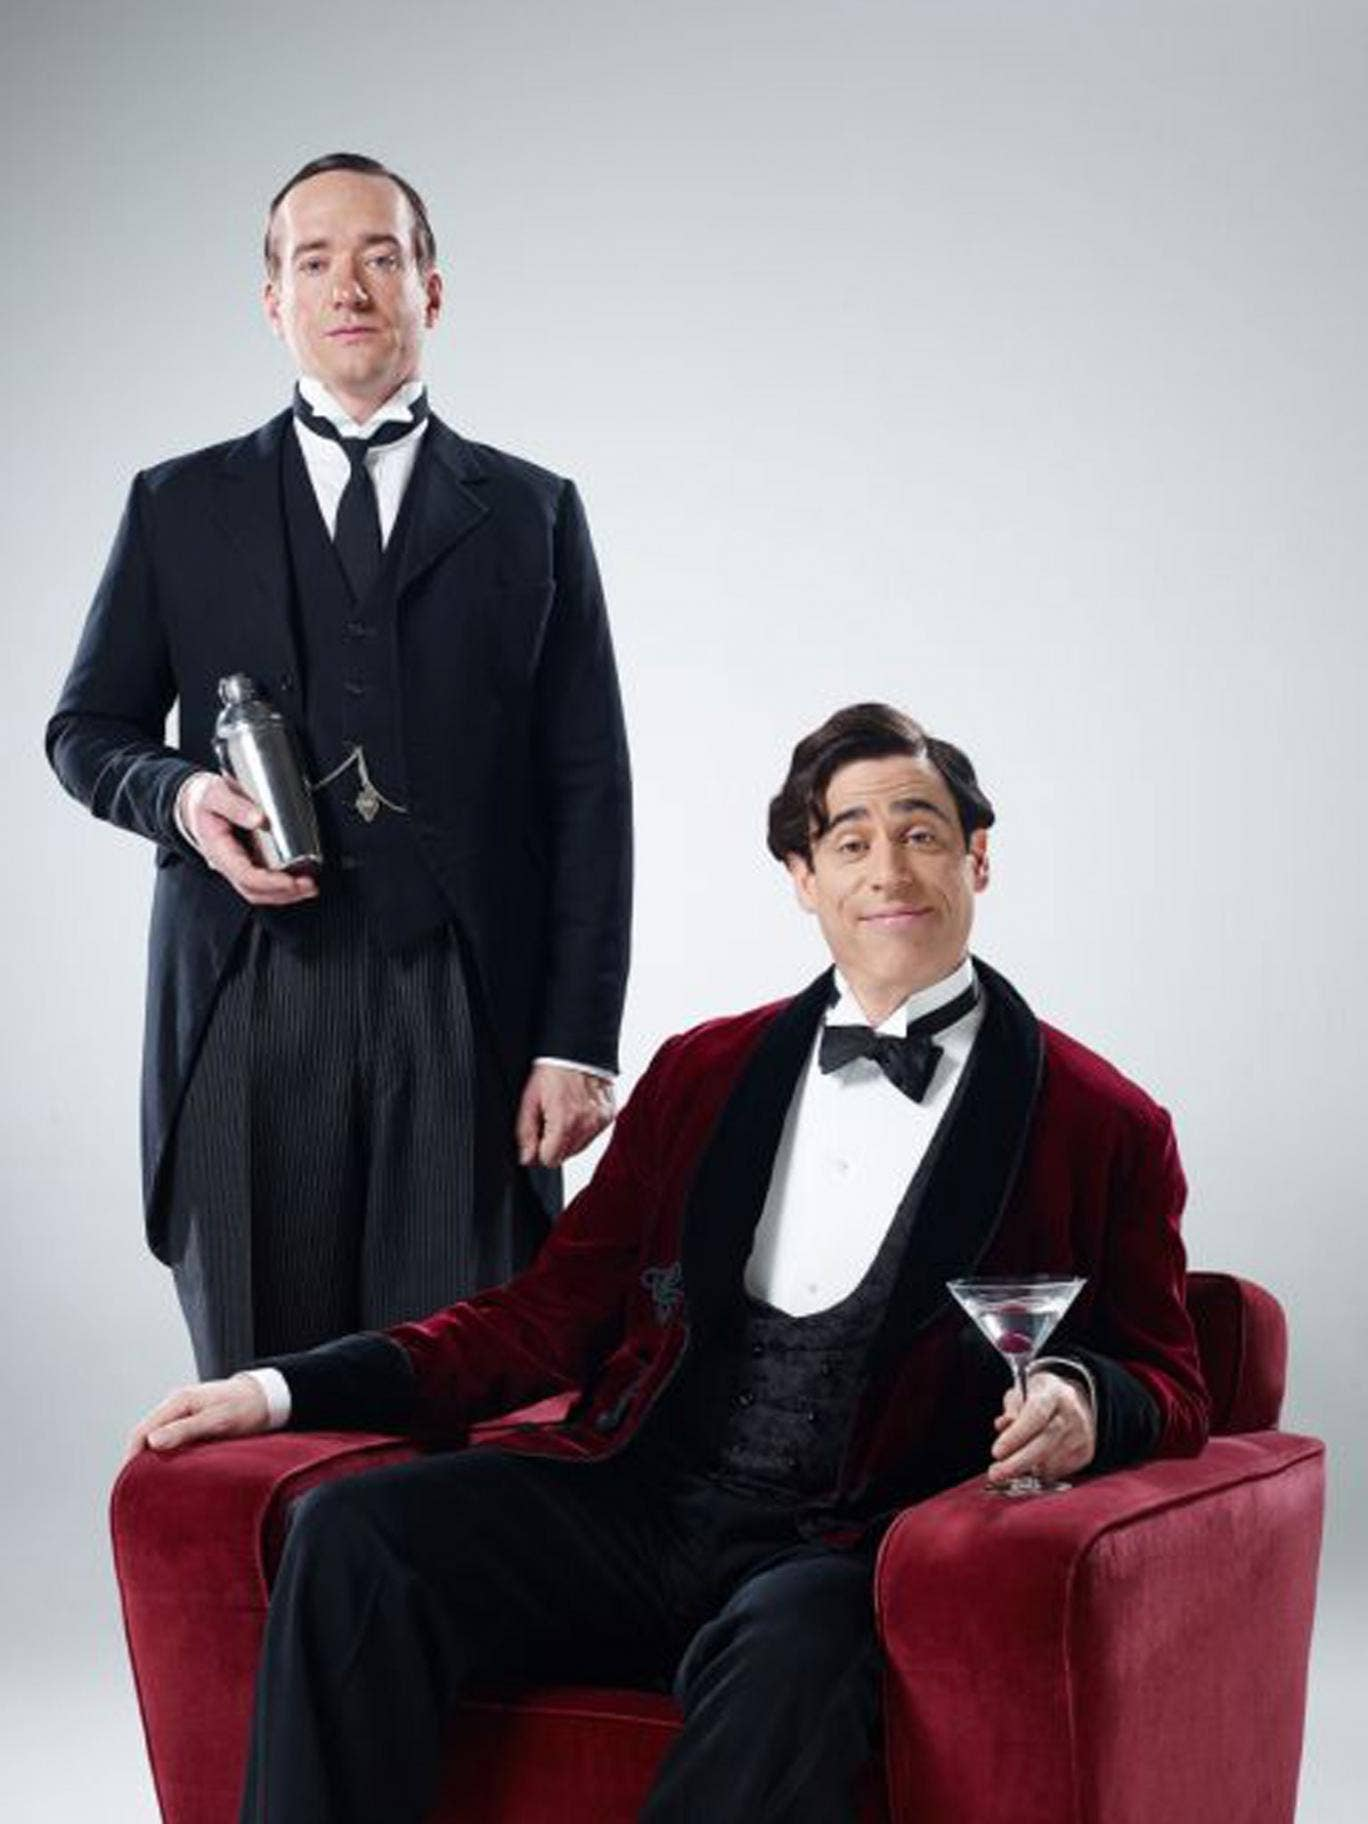 Stephen Mangan, right, and Matthew Macfadyen, left, as Wooster and Jeeves